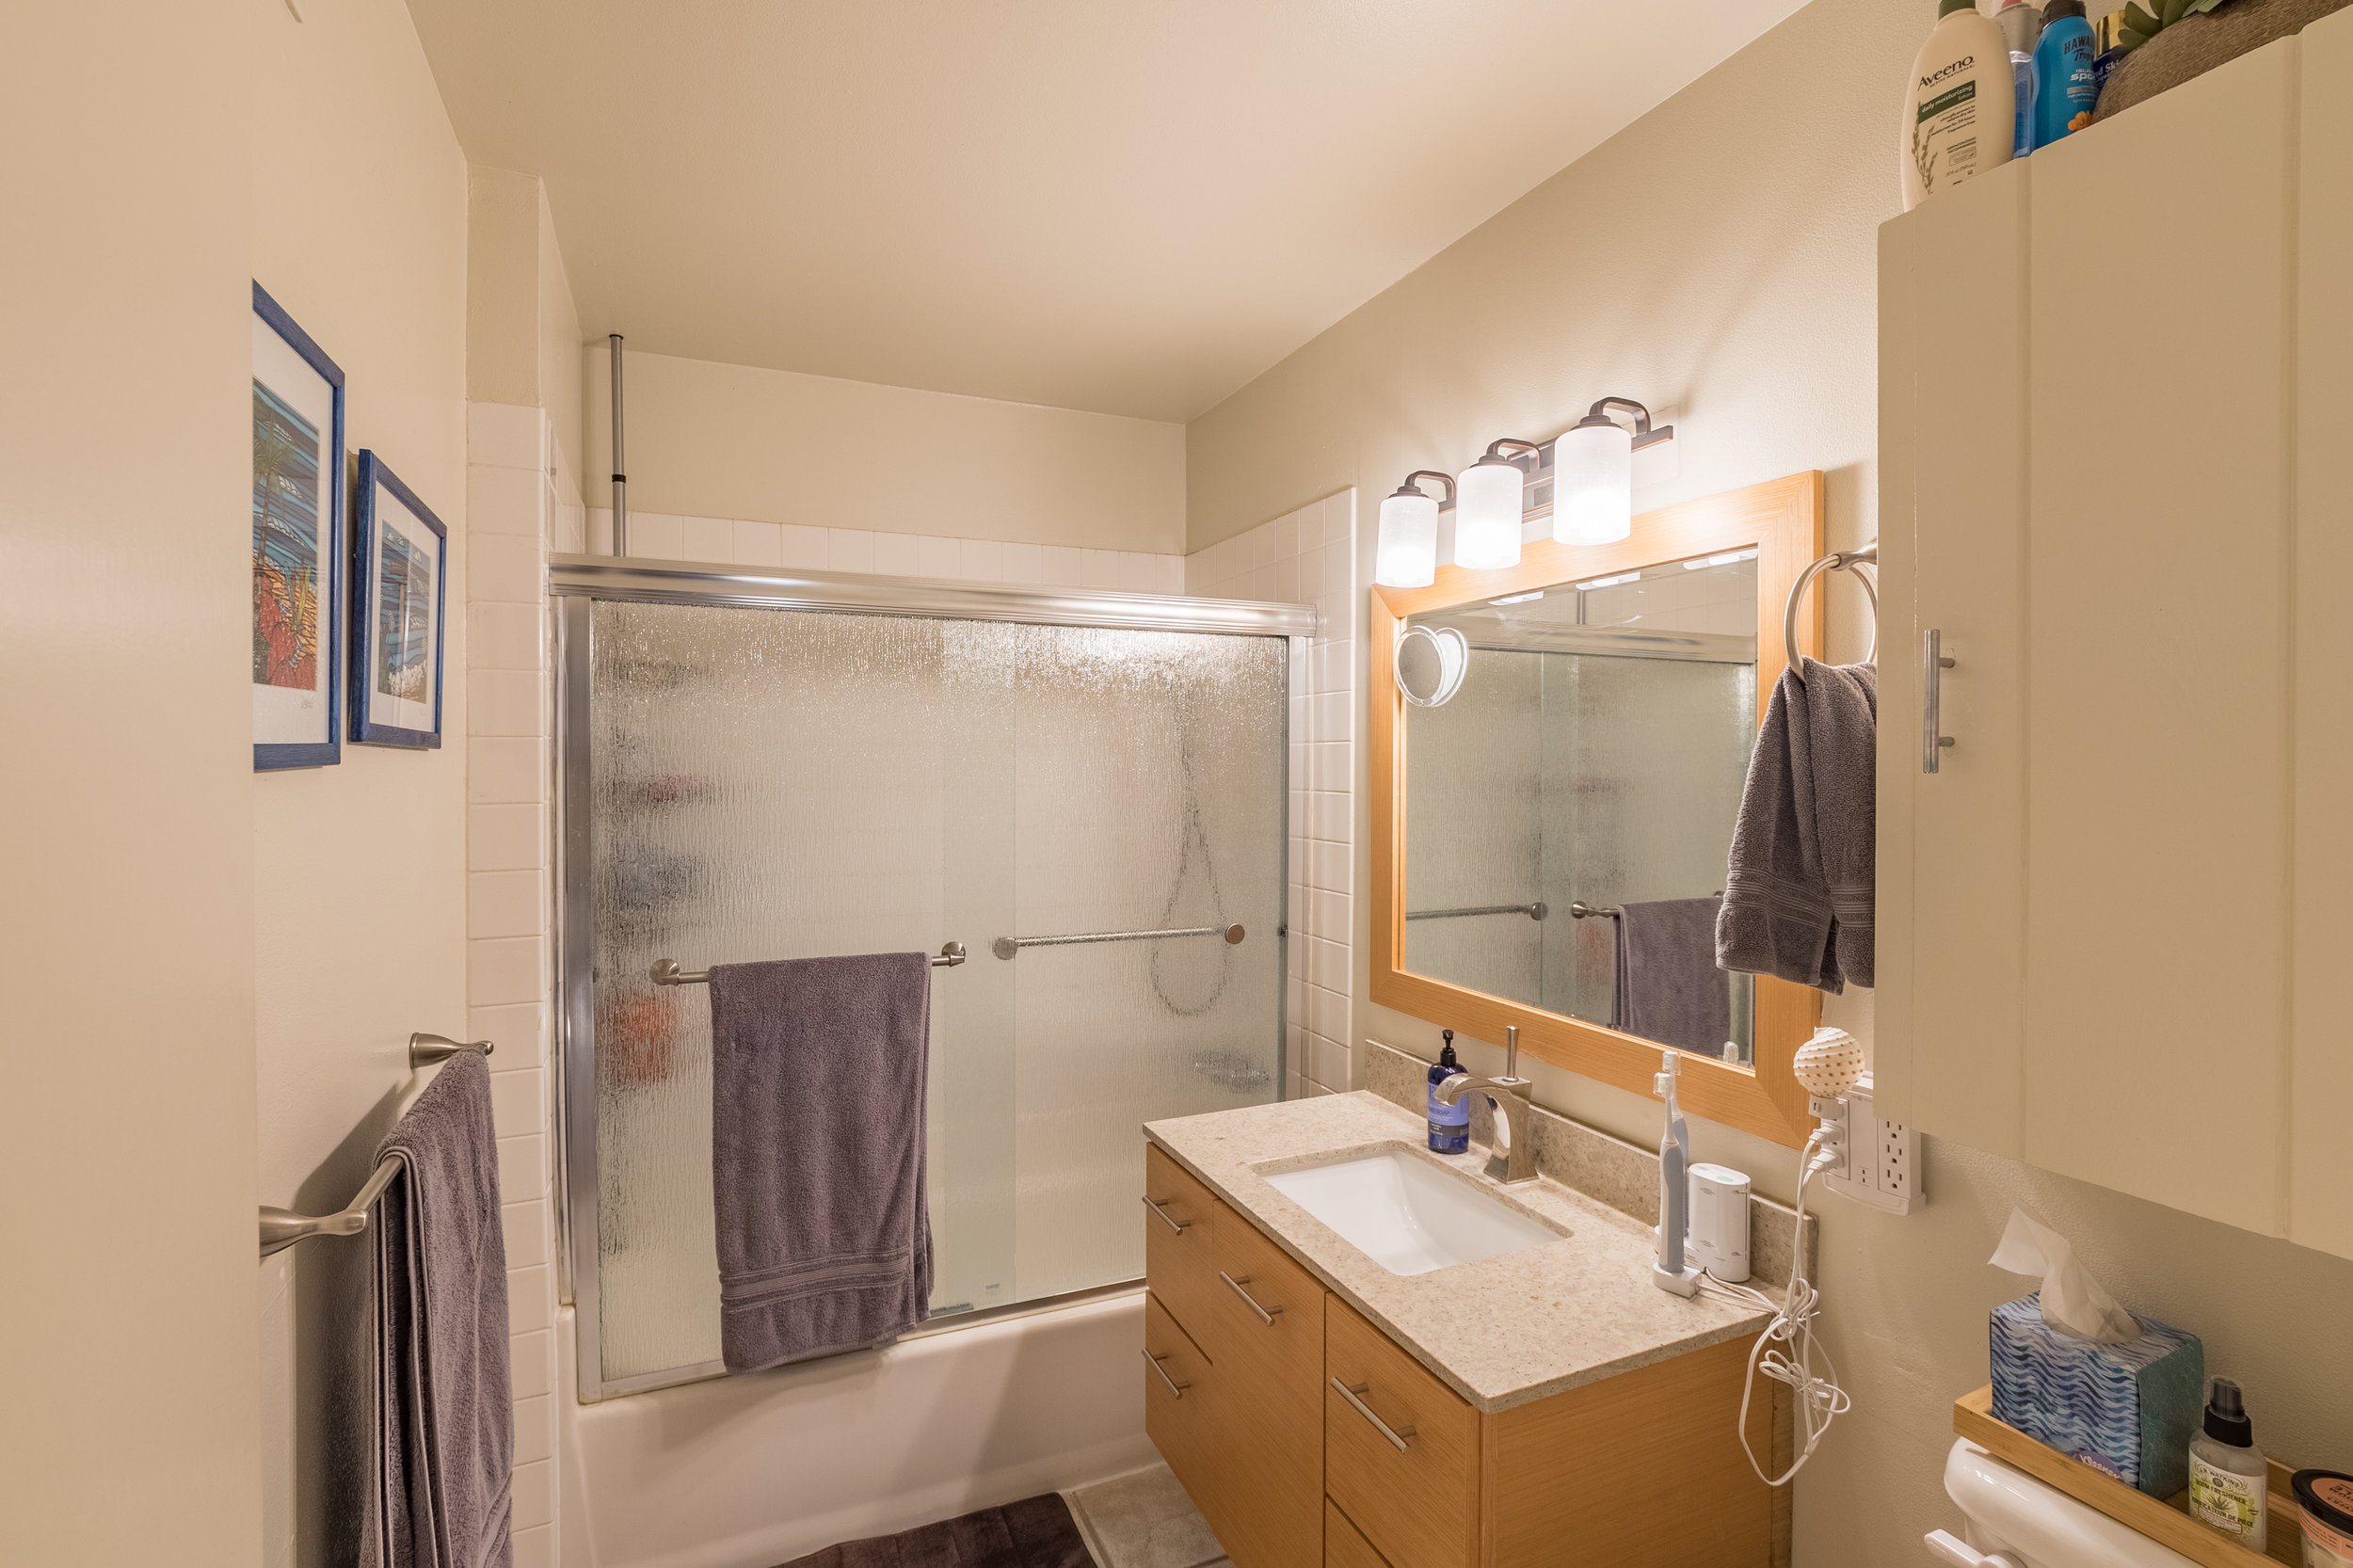 Bathroom in Capitola Duplex for Sale.jpg